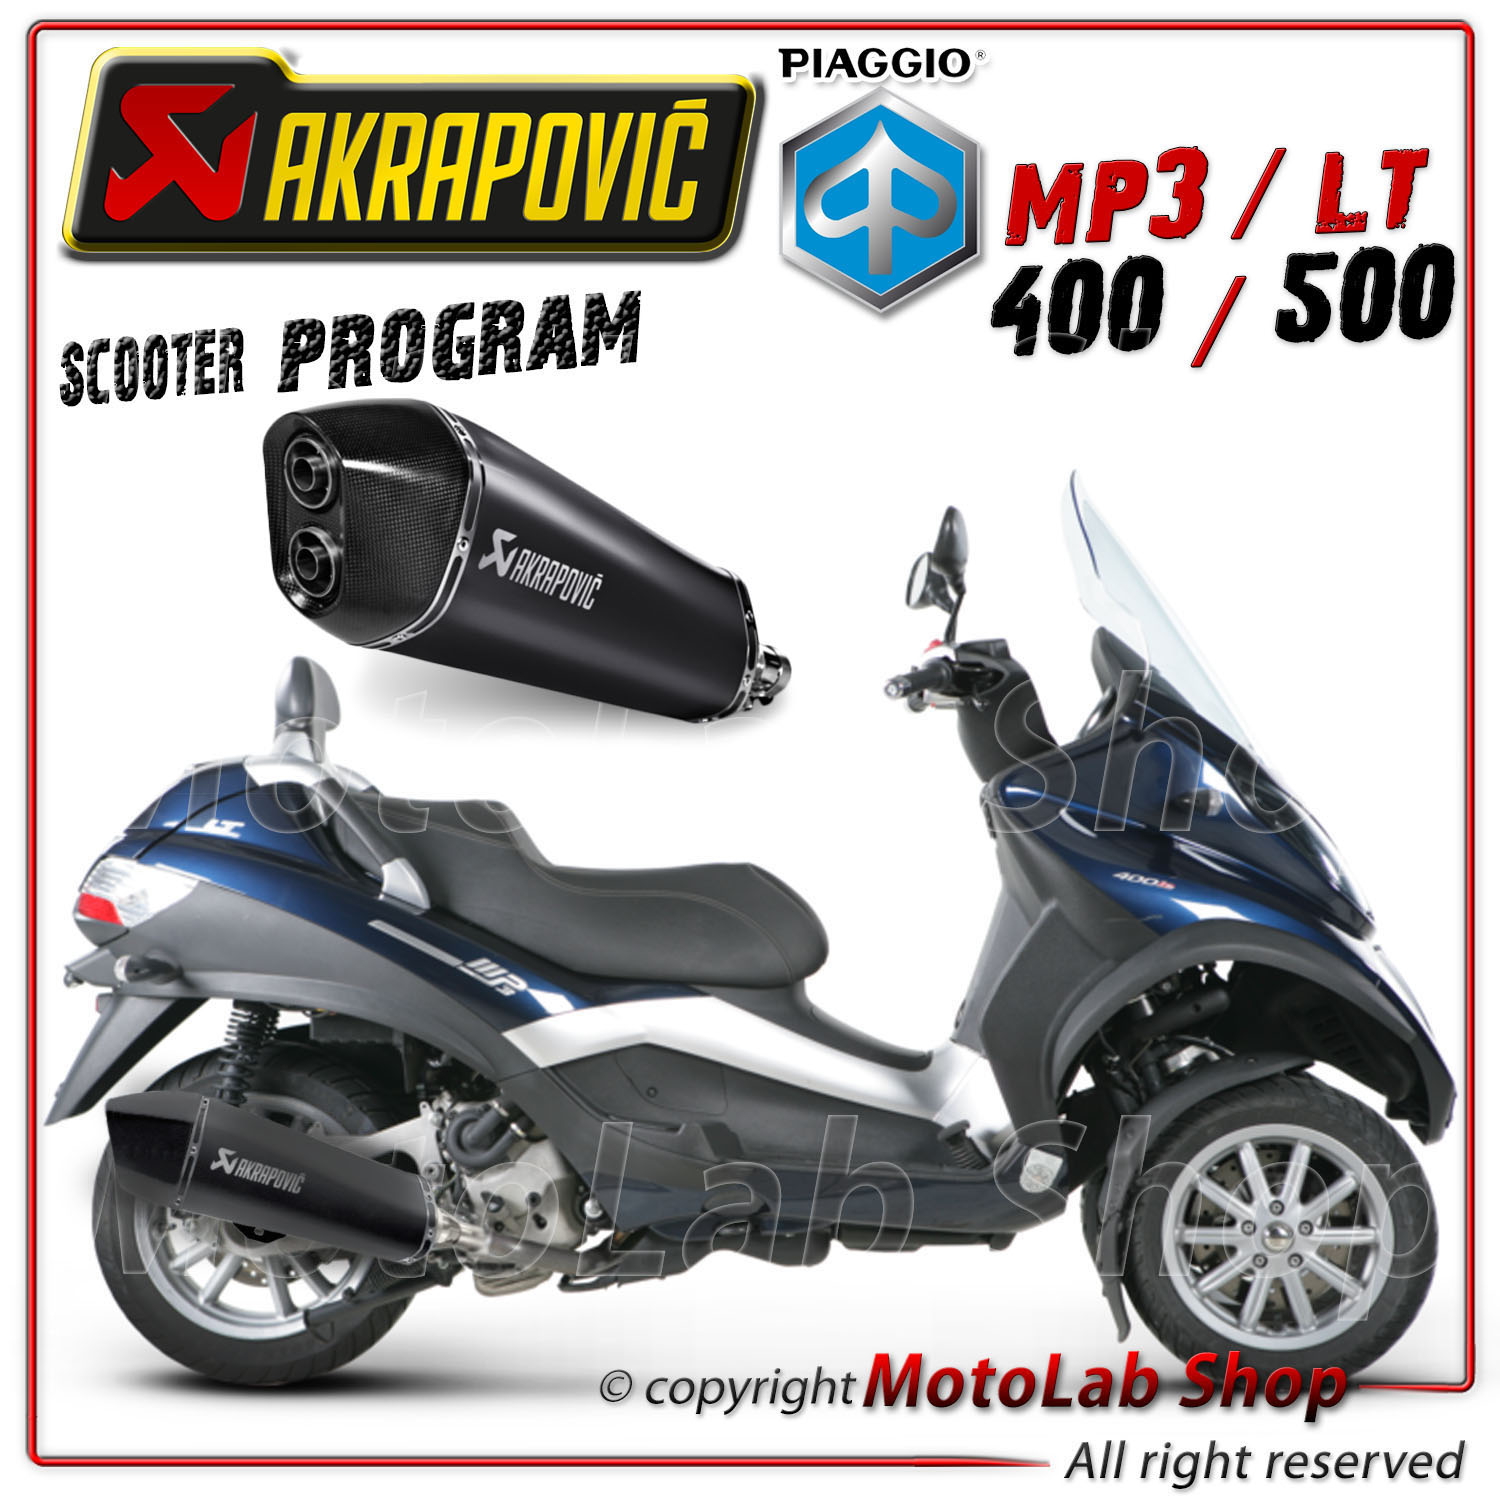 pot d echappement akrapovic conique hexagonal noire piaggio mp3 lt 500 2011 ebay. Black Bedroom Furniture Sets. Home Design Ideas